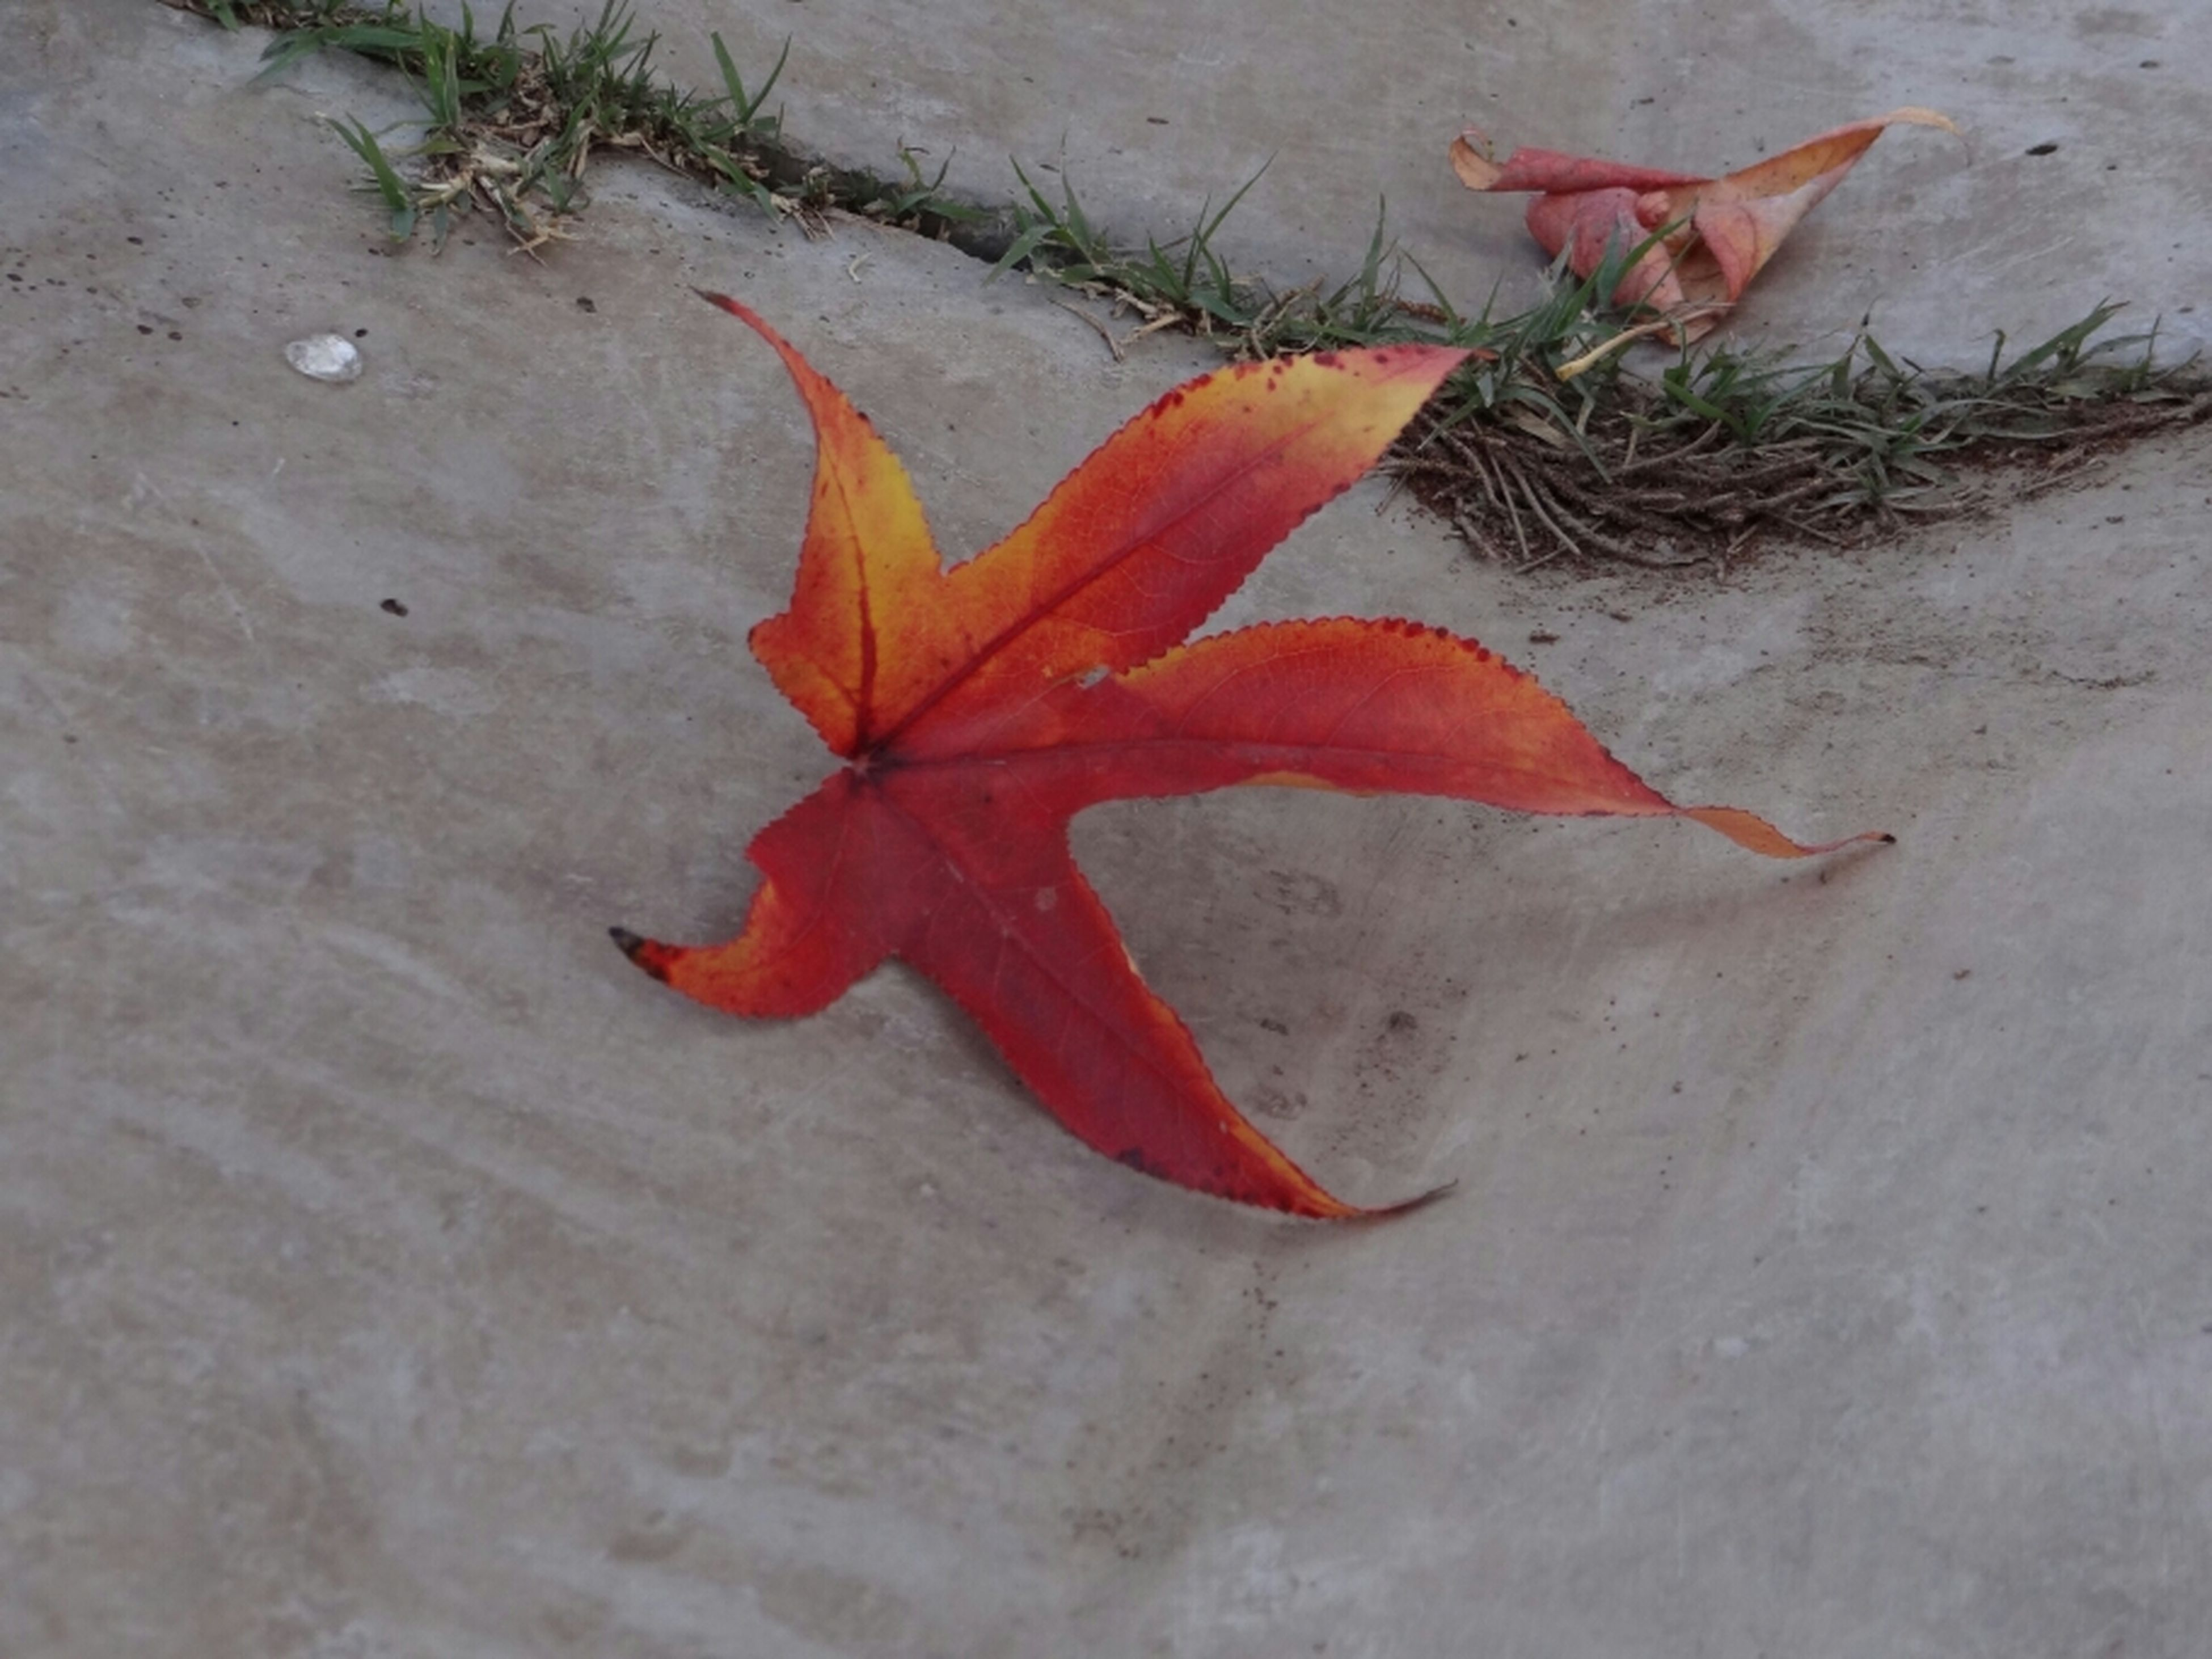 leaf, autumn, change, high angle view, maple leaf, dry, fallen, leaves, orange color, red, season, close-up, nature, ground, directly above, day, no people, outdoors, flooring, street